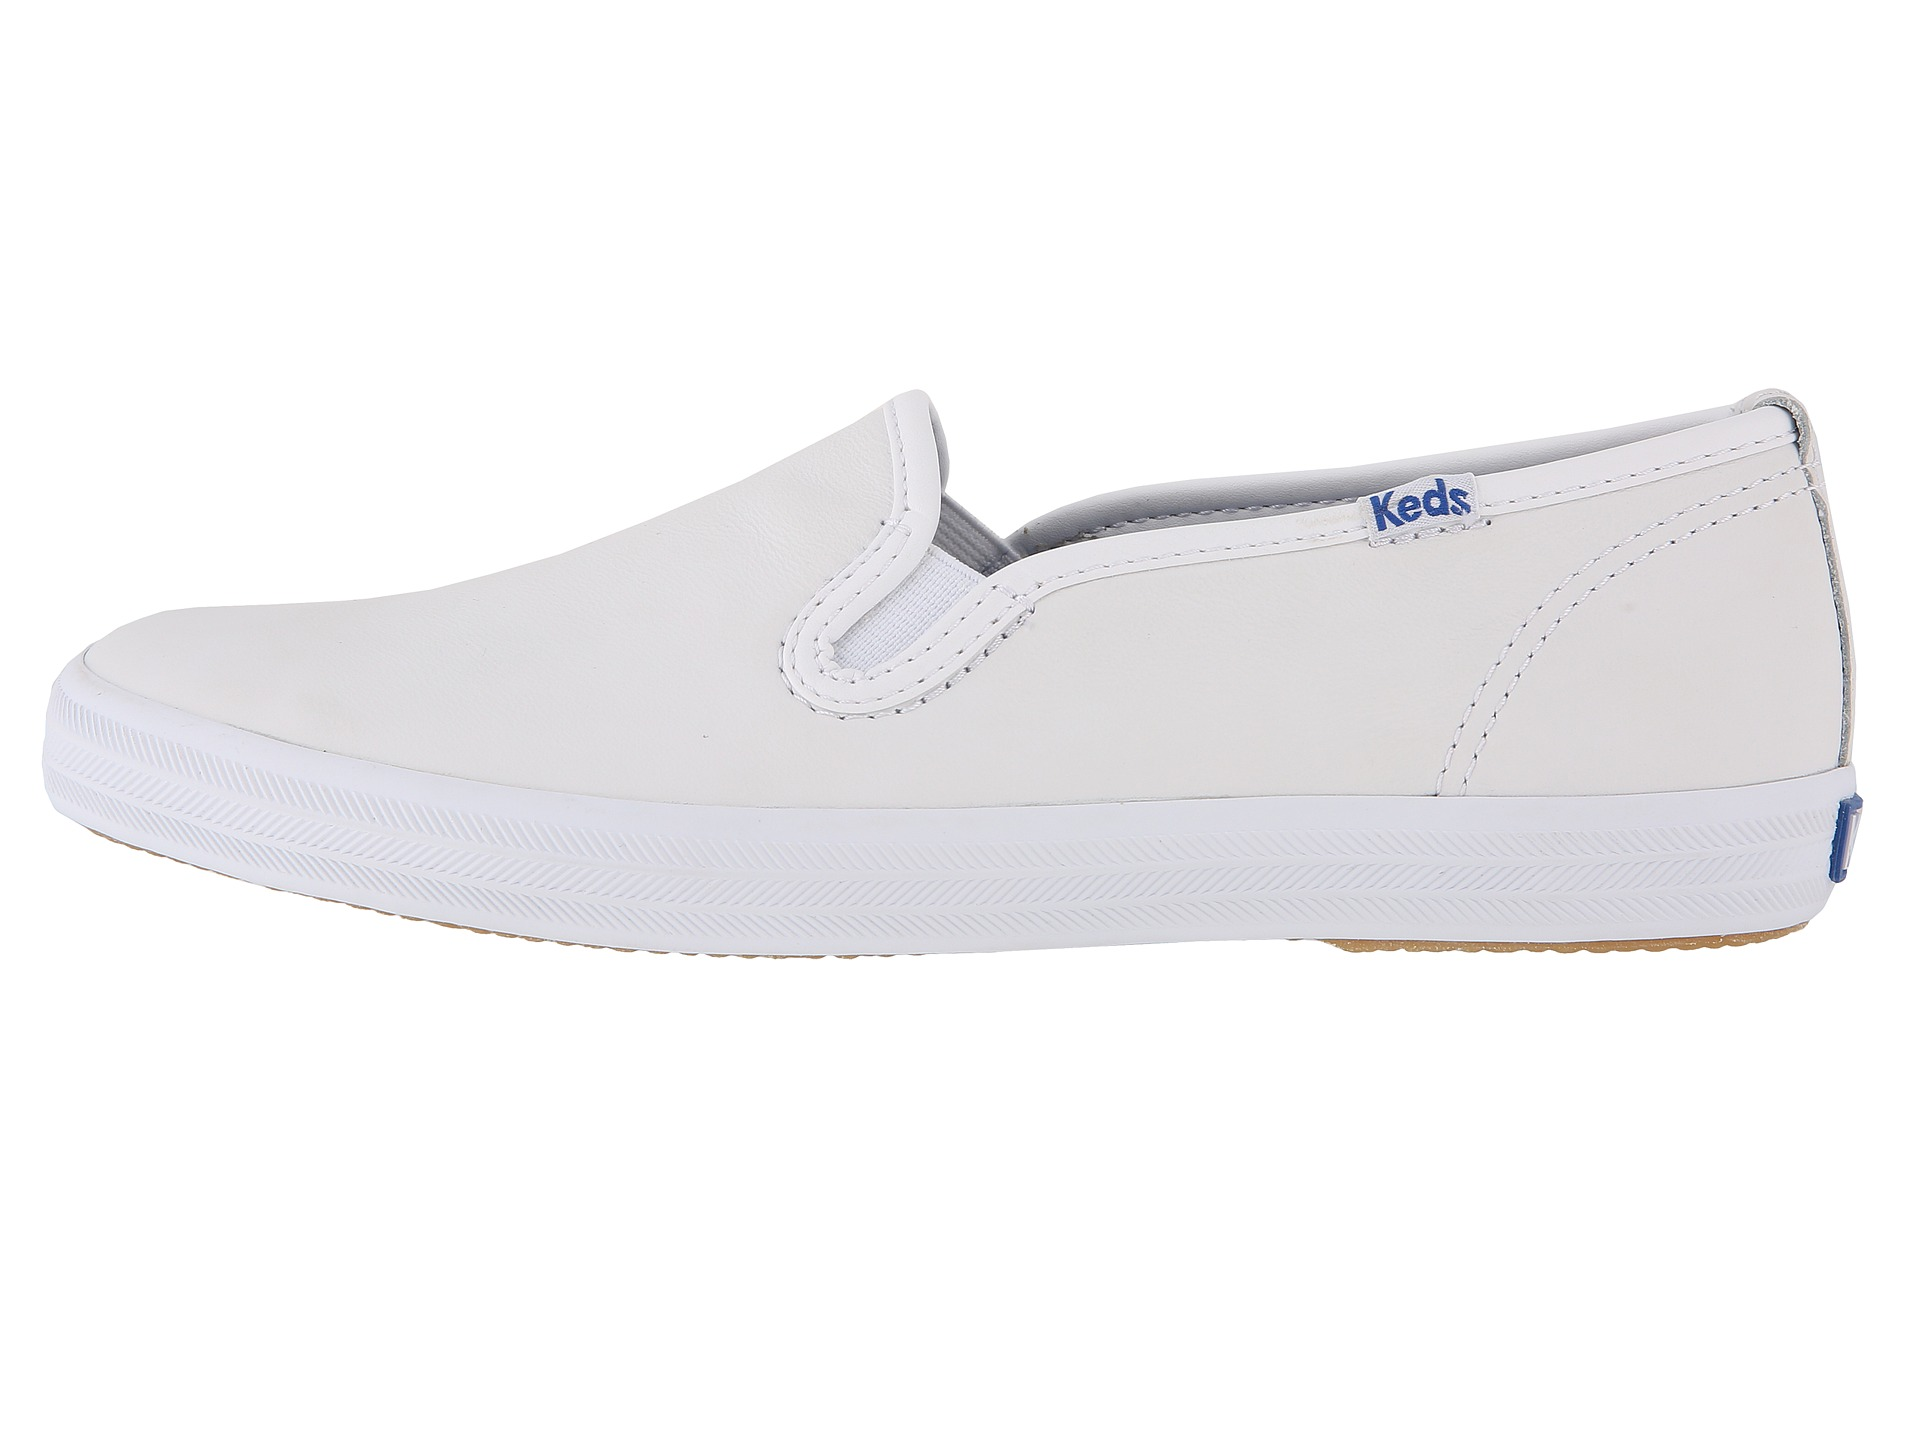 keds chion leather slip on at zappos